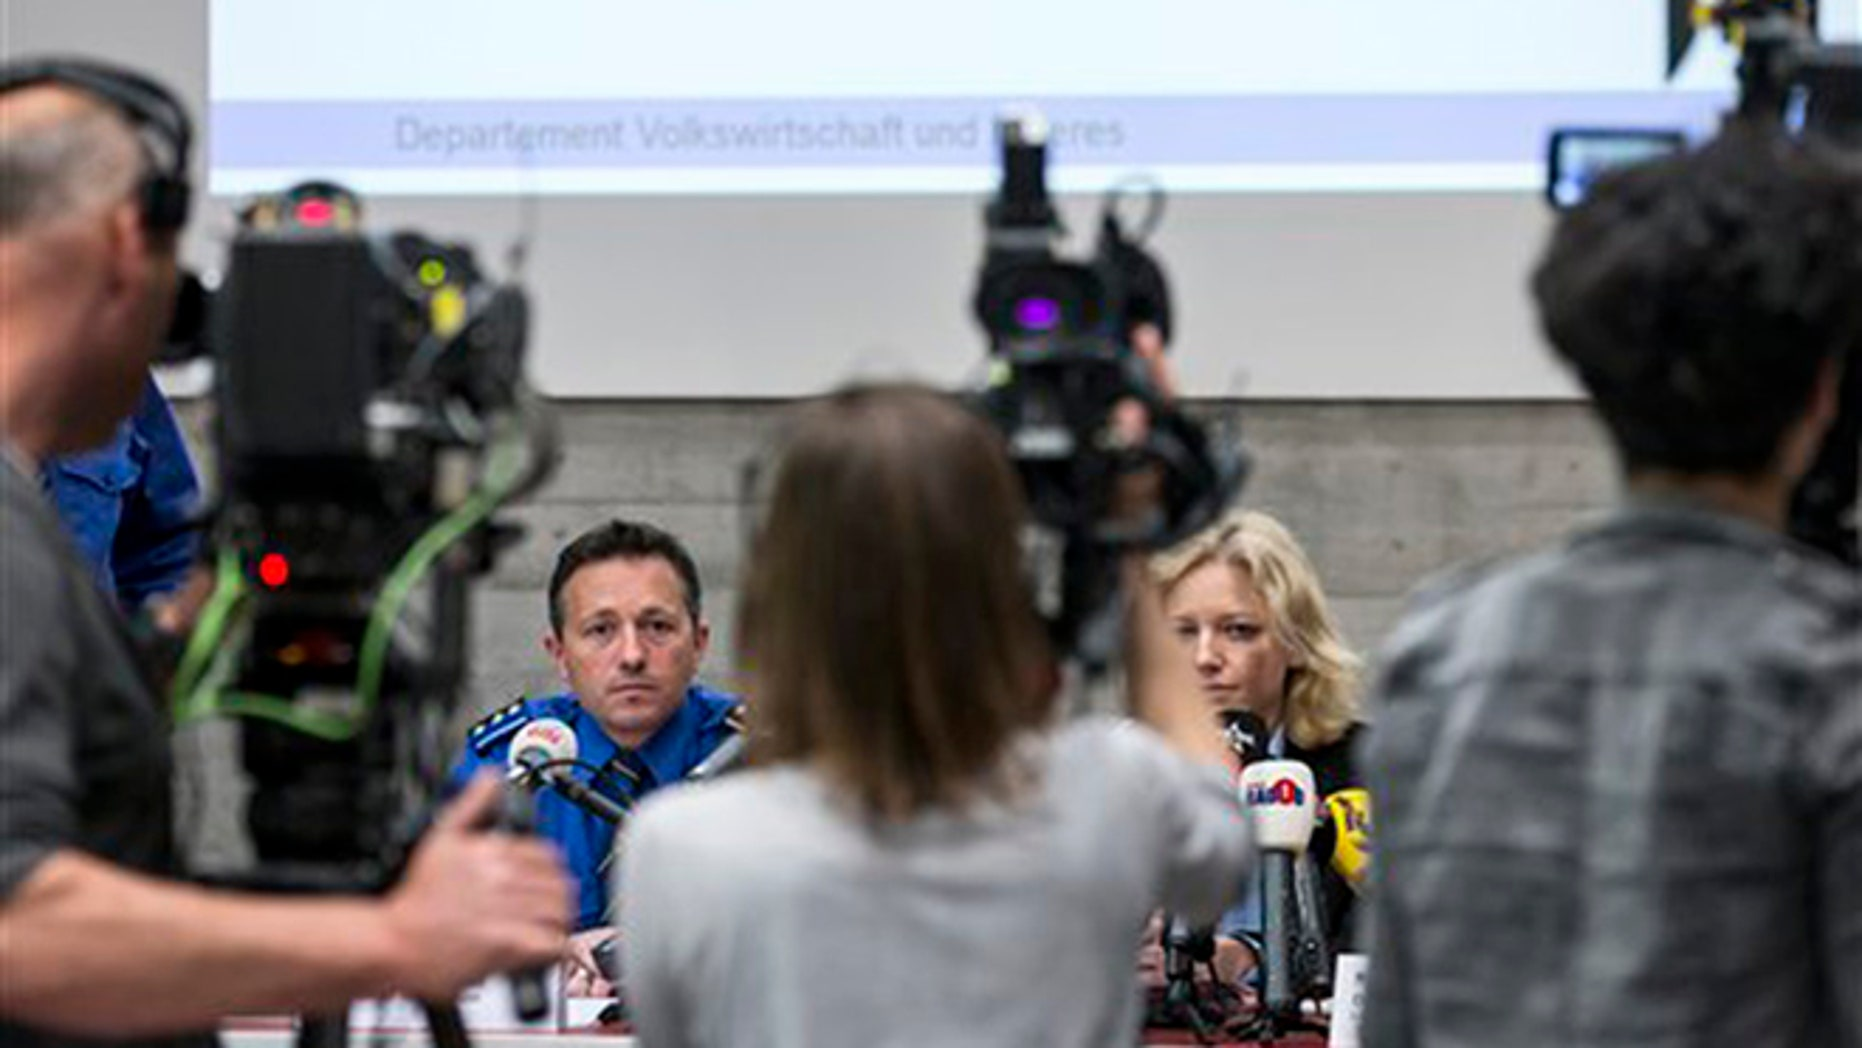 Police captain Markus Gisin, left, and prosecutor Barbara Loppacher, right inform the media in Schafisheim, Switzerland. about the killing of a family in Rupperswil in December. Officials in the nearby Swiss town of Rupperswil are expressing shock after the arrest of a 33-year-old soccer coach over the killing of four people.  (AP)